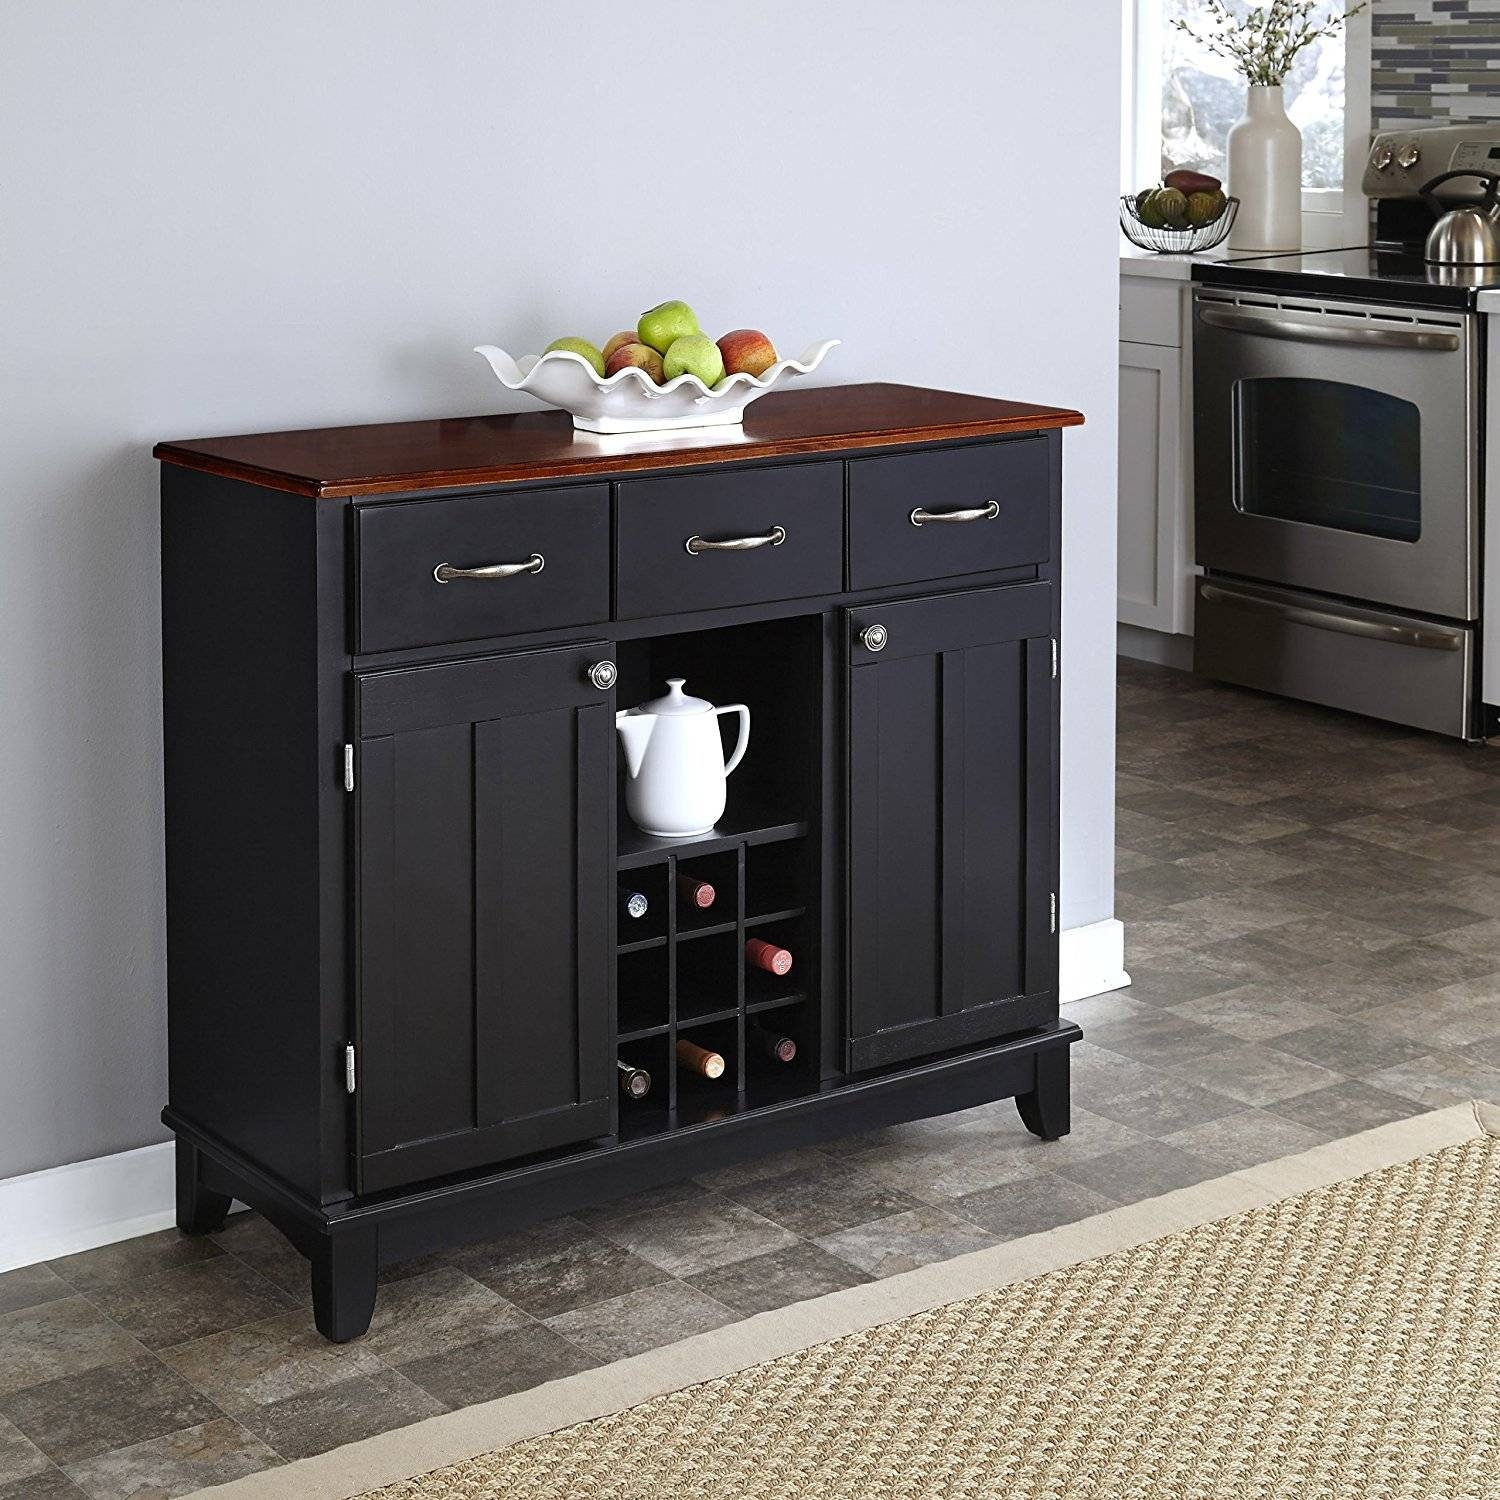 Kitchen : Long Buffet Table Sideboard Sale Dining Sideboard Large Within Elegant Black Sideboards And Buffets (#7 of 15)